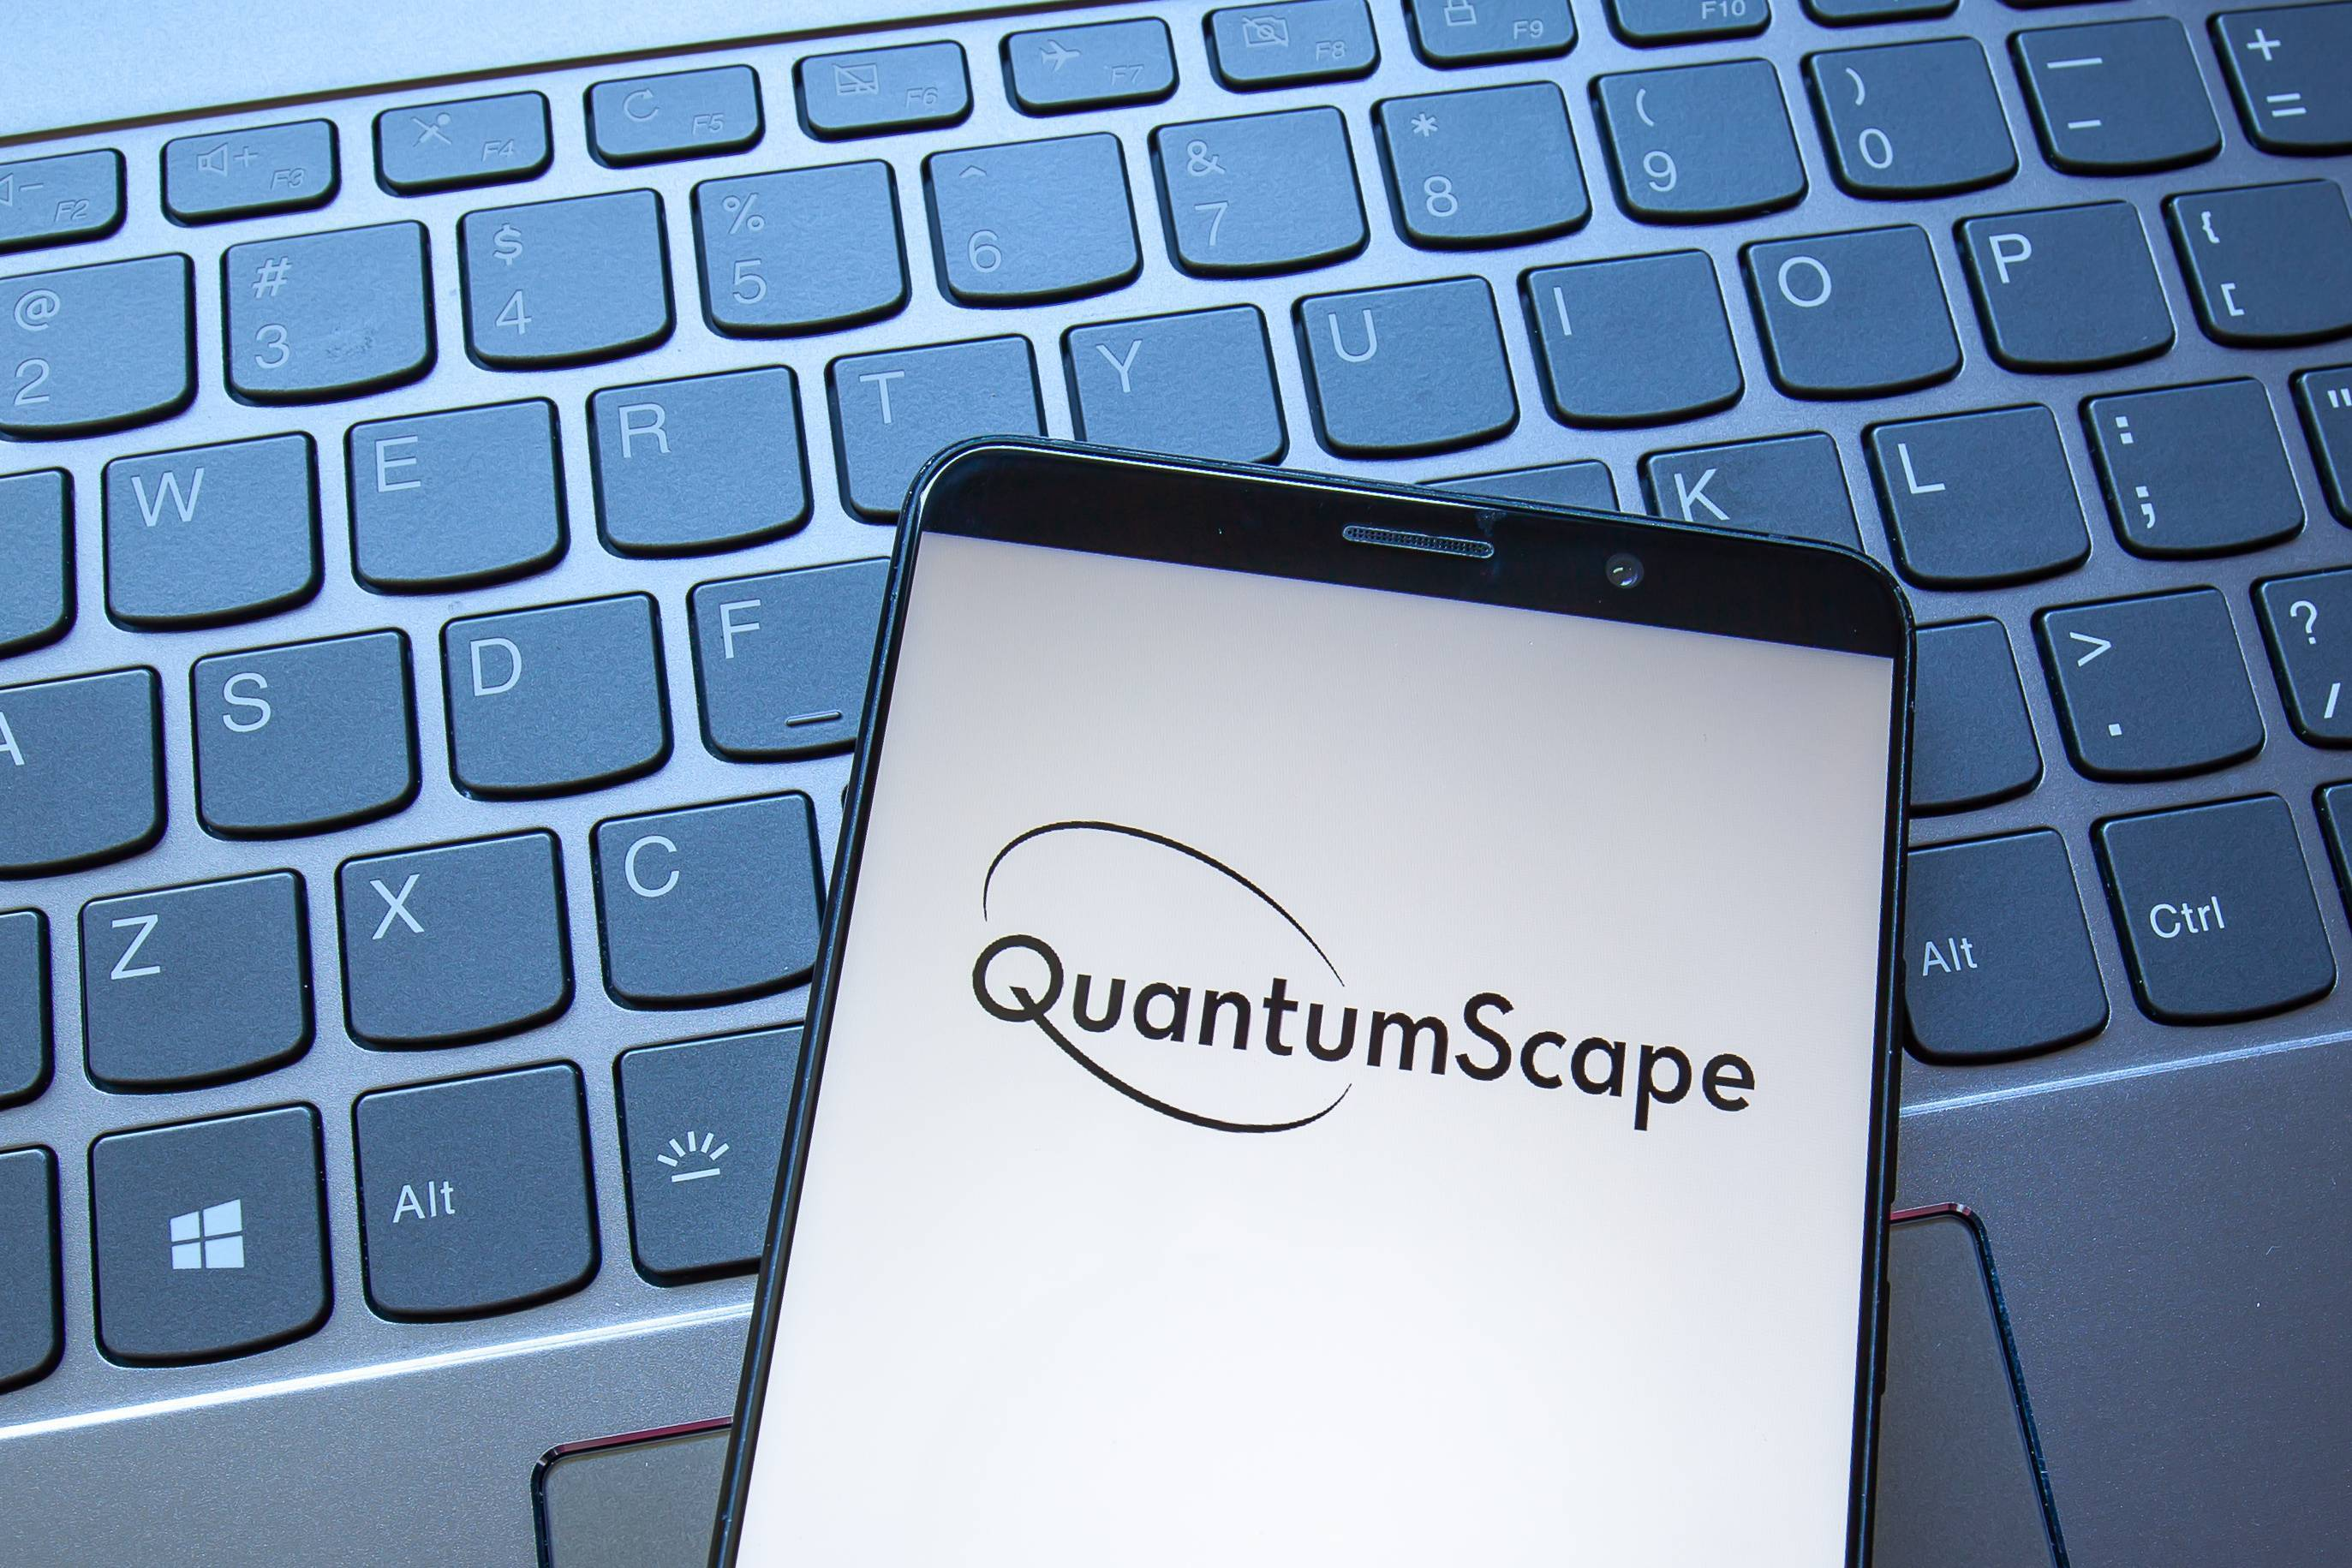 QuantumScape Stock Forecast – where will QS stock be in 2025?